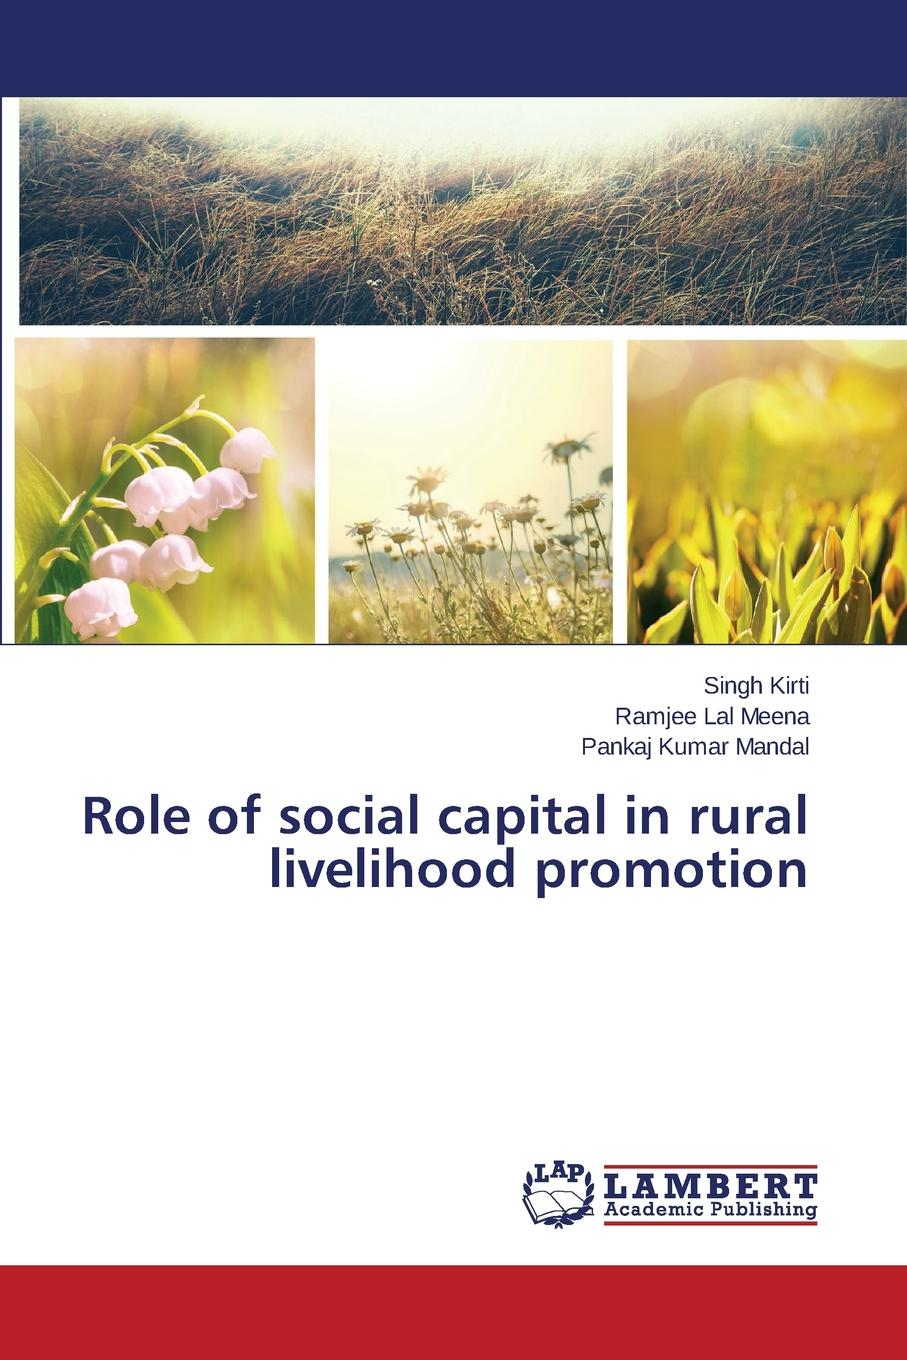 Kirti Singh, Meena Ramjee Lal, Mandal Pankaj Kumar Role of Social Capital in Rural Livelihood Promotion development banks in rural social change